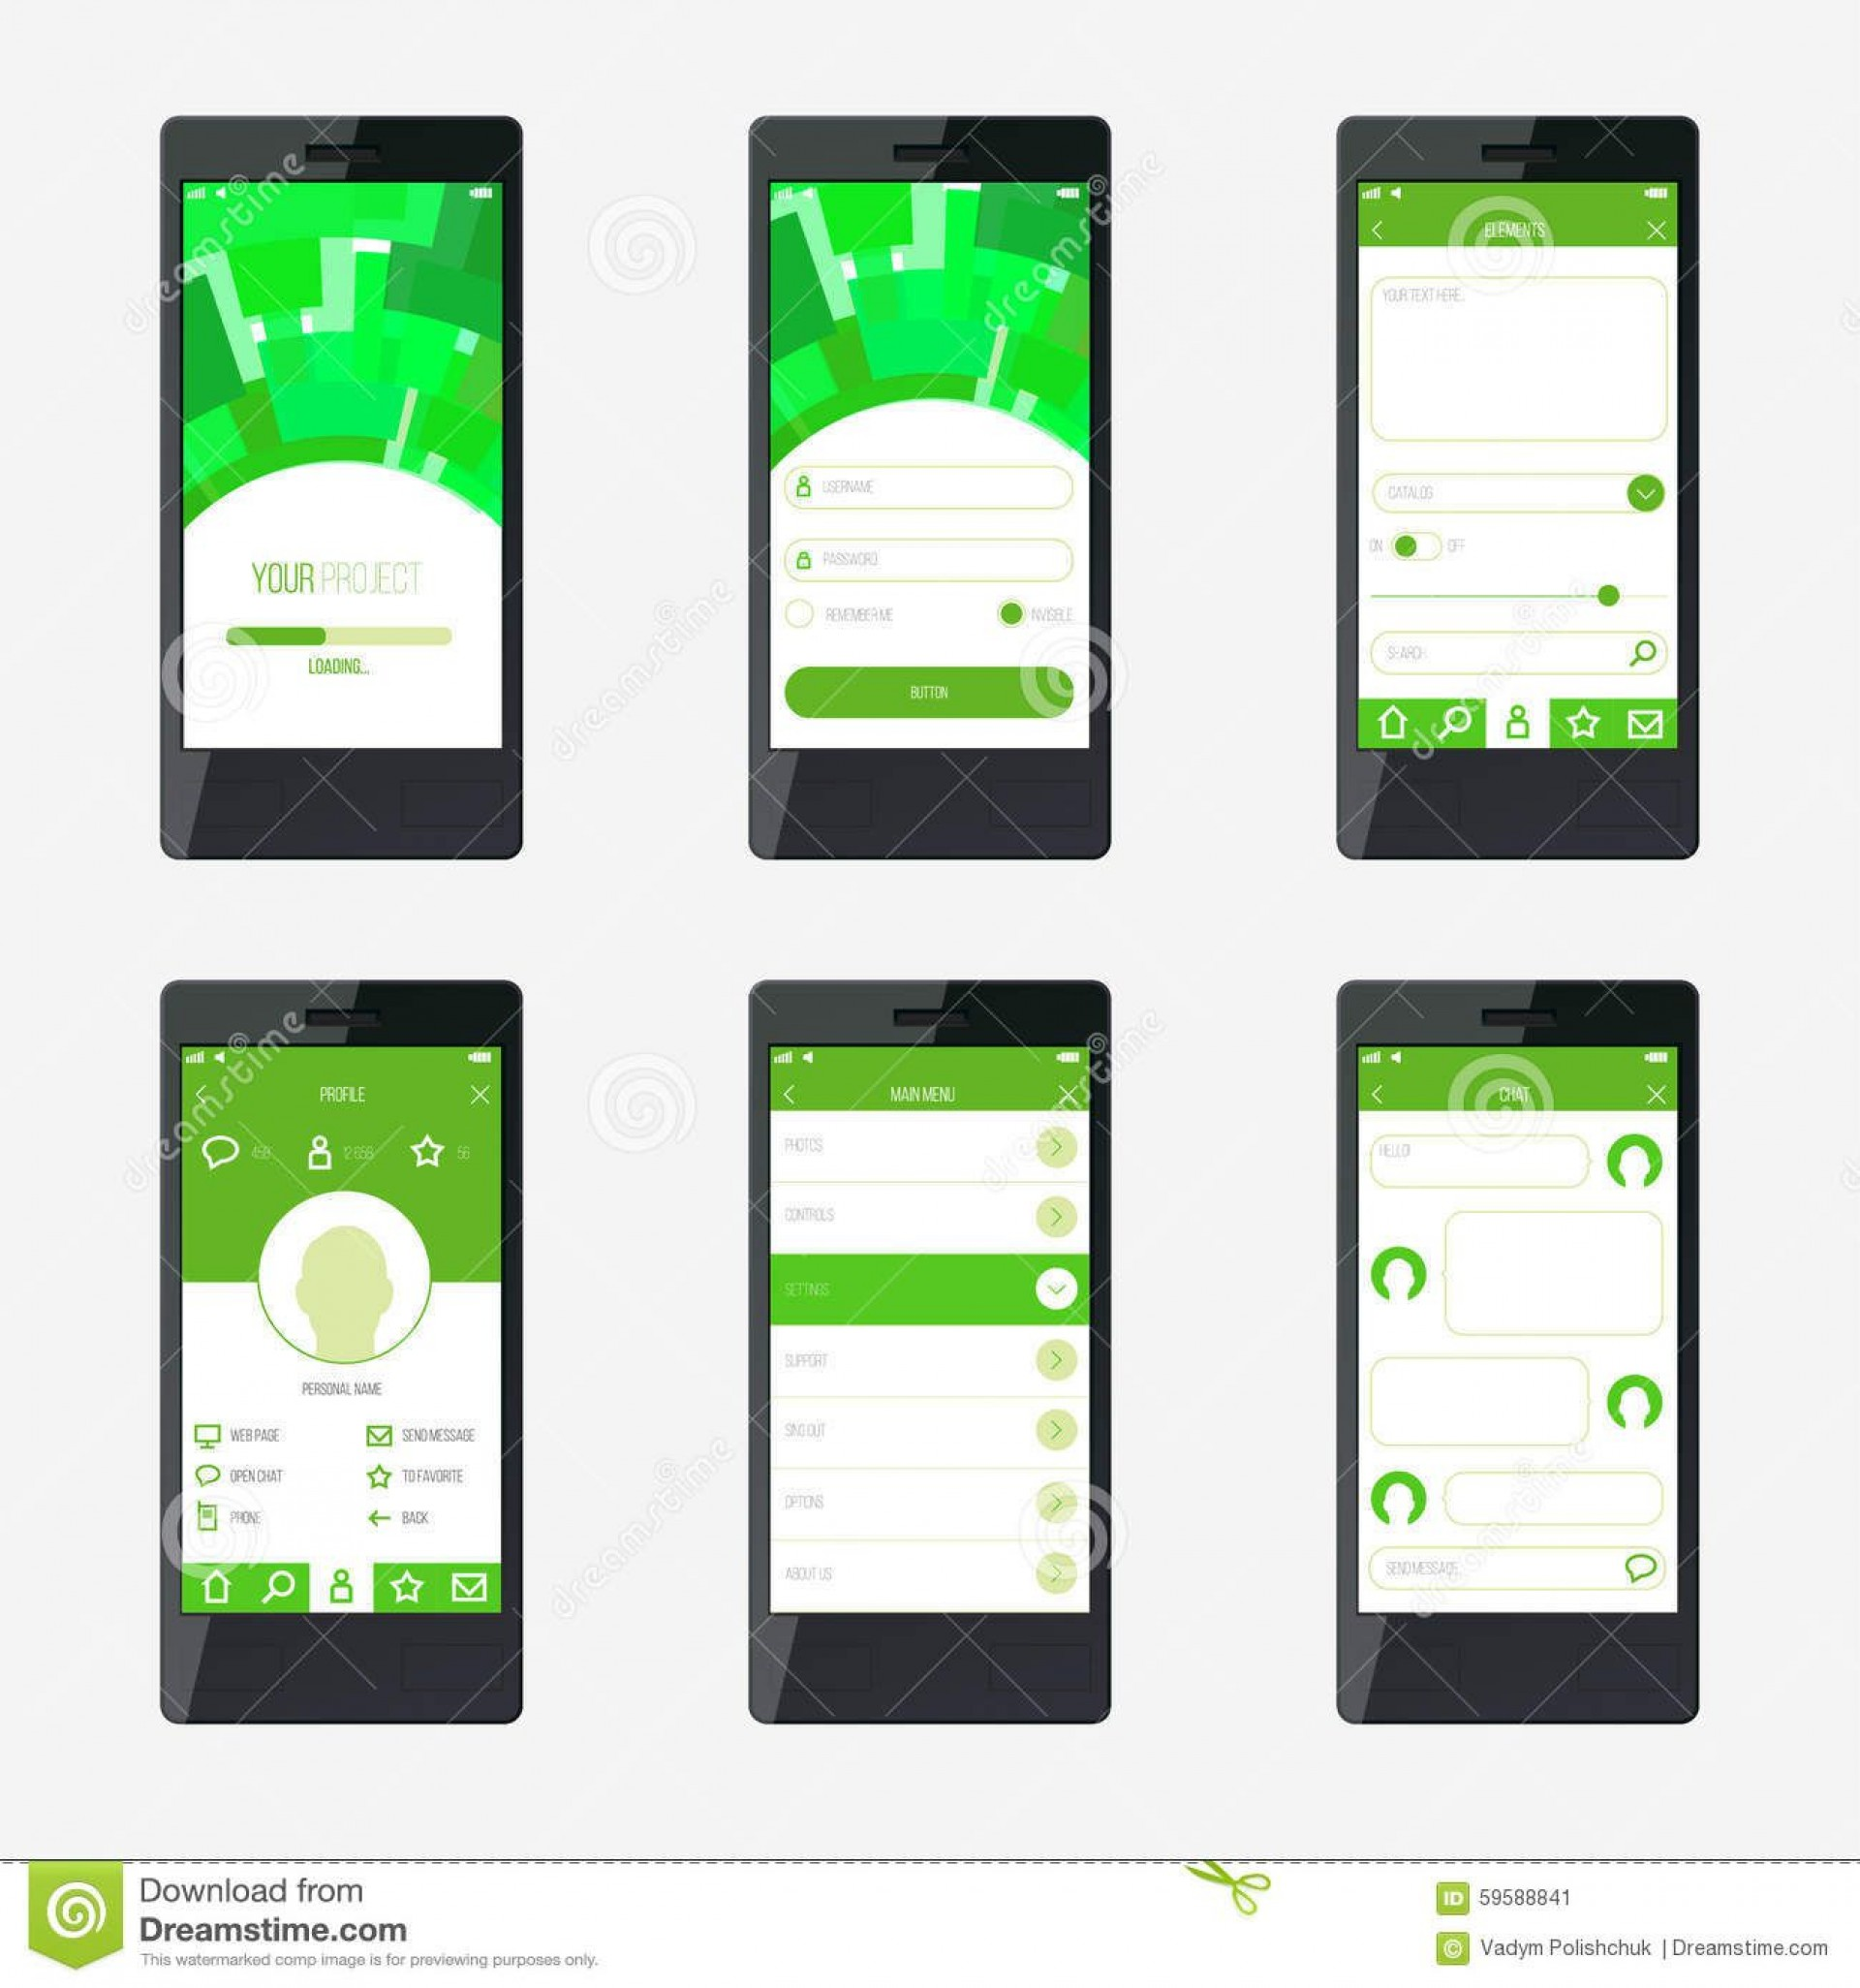 008 Formidable Mobile App Design Template Highest Clarity  Size Free Download Ui Psd1920